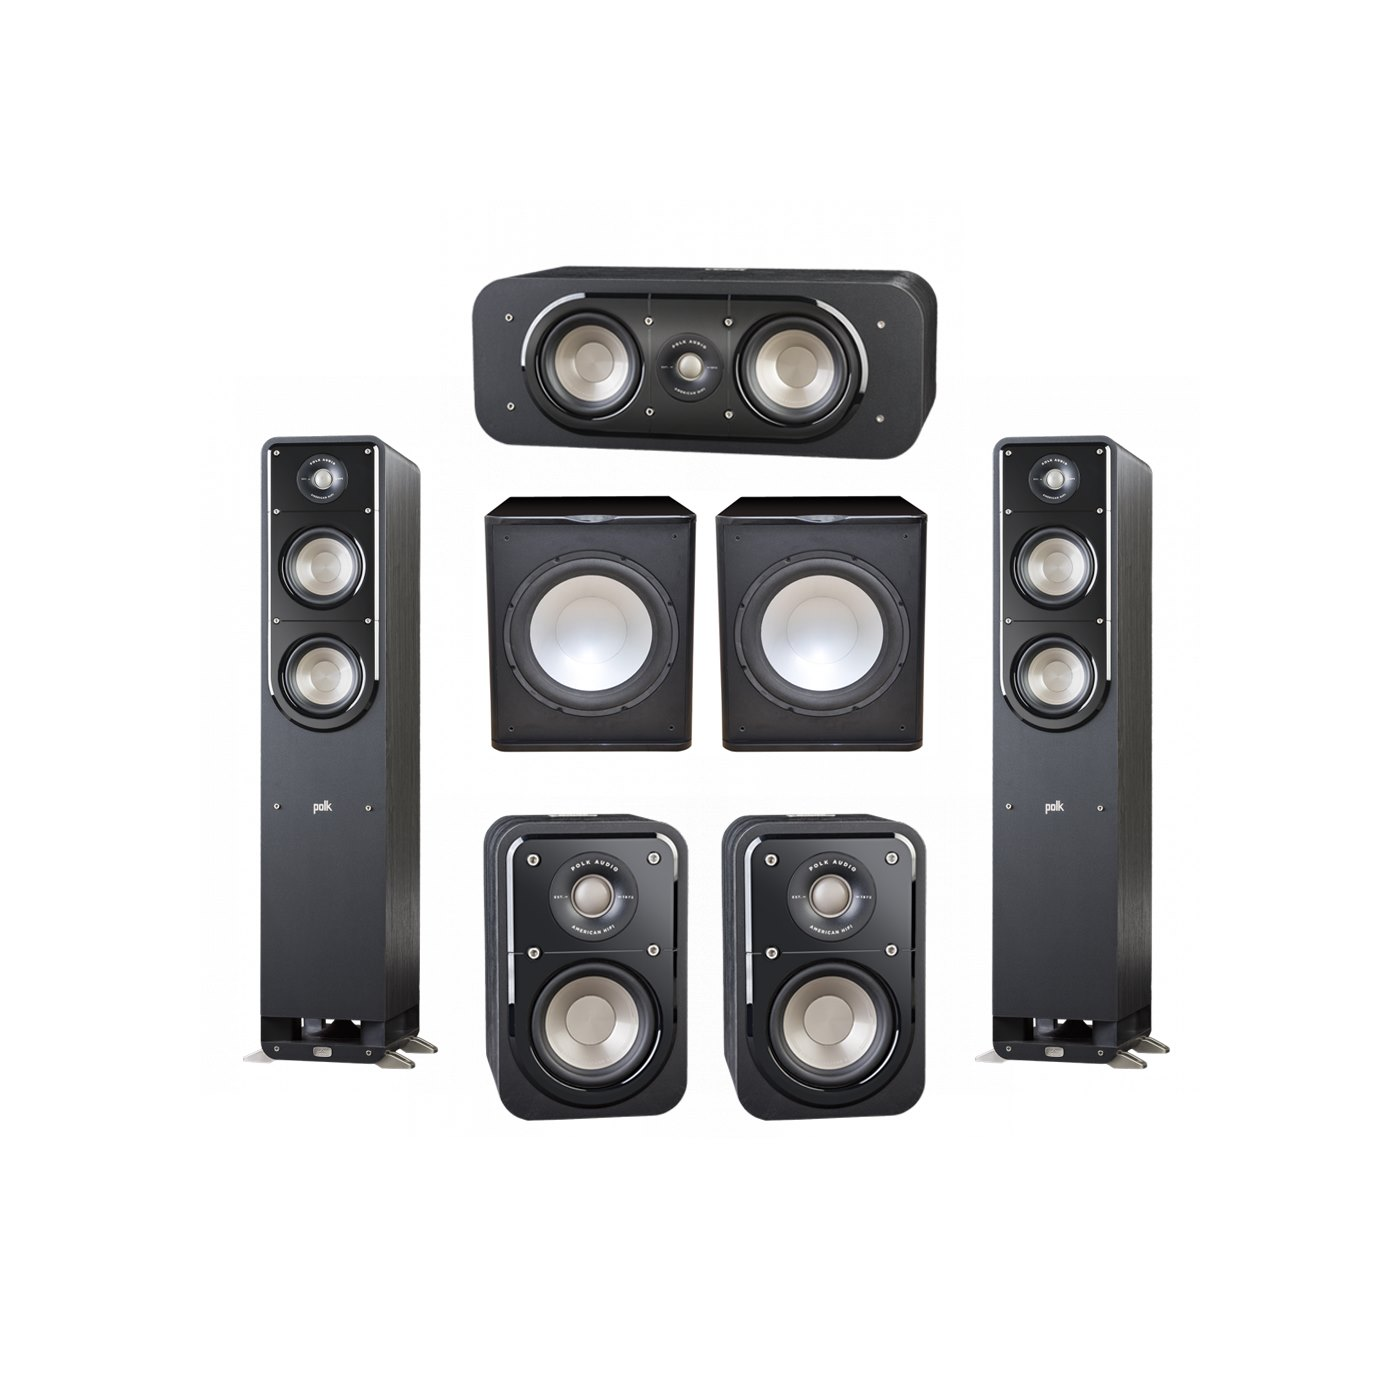 Polk Audio Signature 5.2 System with 2 S50 Tower Speaker, 1 Polk S30 Center Speaker, 2 Polk S10 Surround Speaker, 2 Premier Acoustic PA-150 Powered Subwoofer